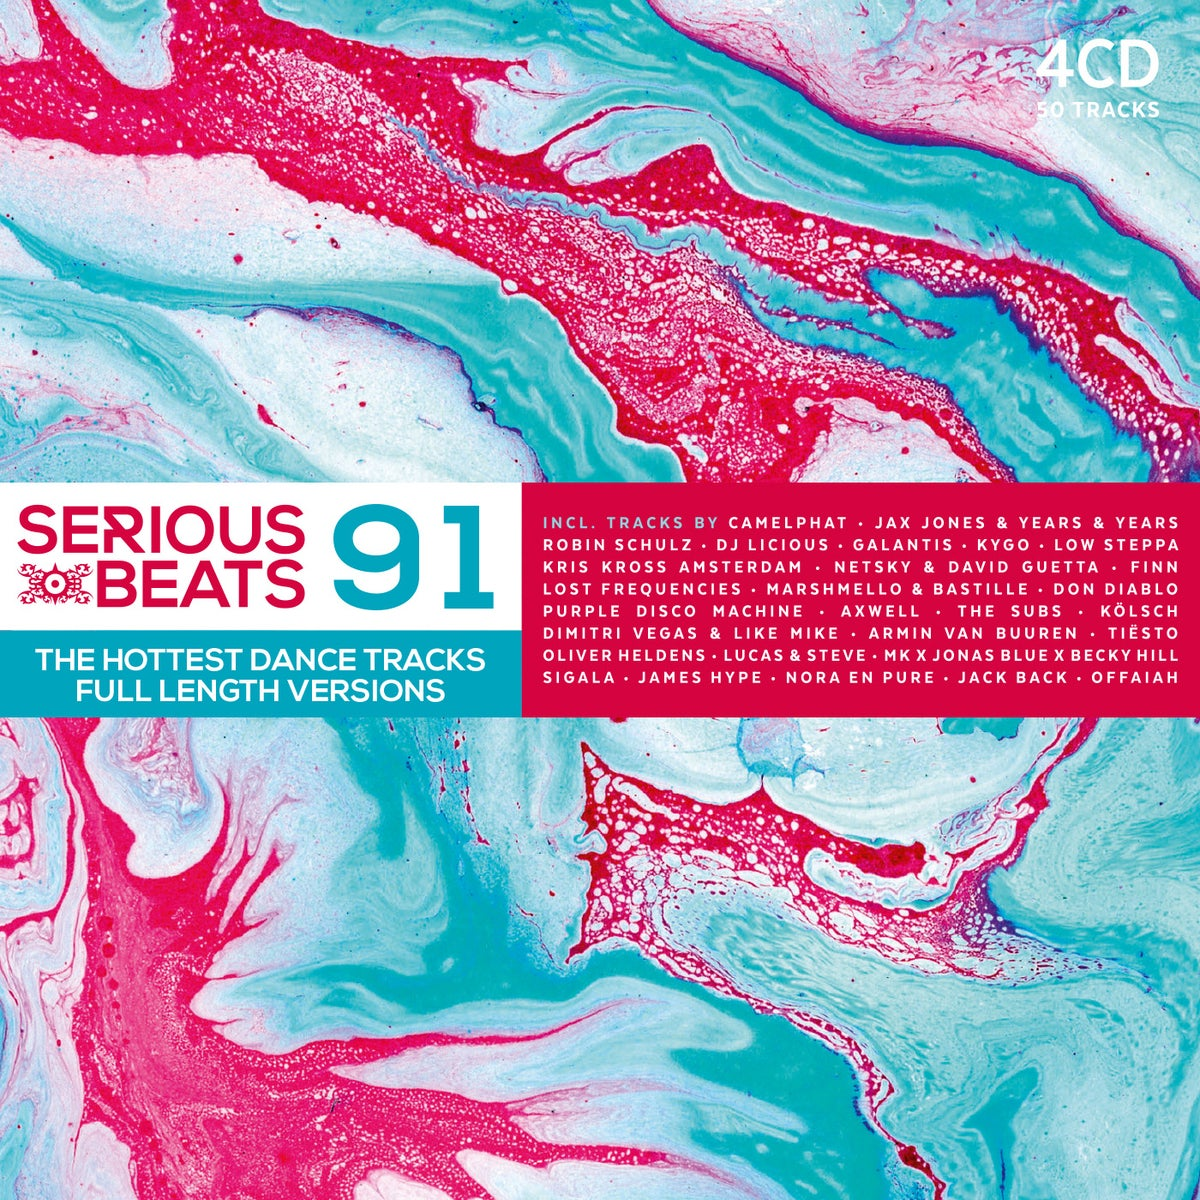 Image of VARIOUS ARTISTS - SERIOUS BEATS 91 (4CD)